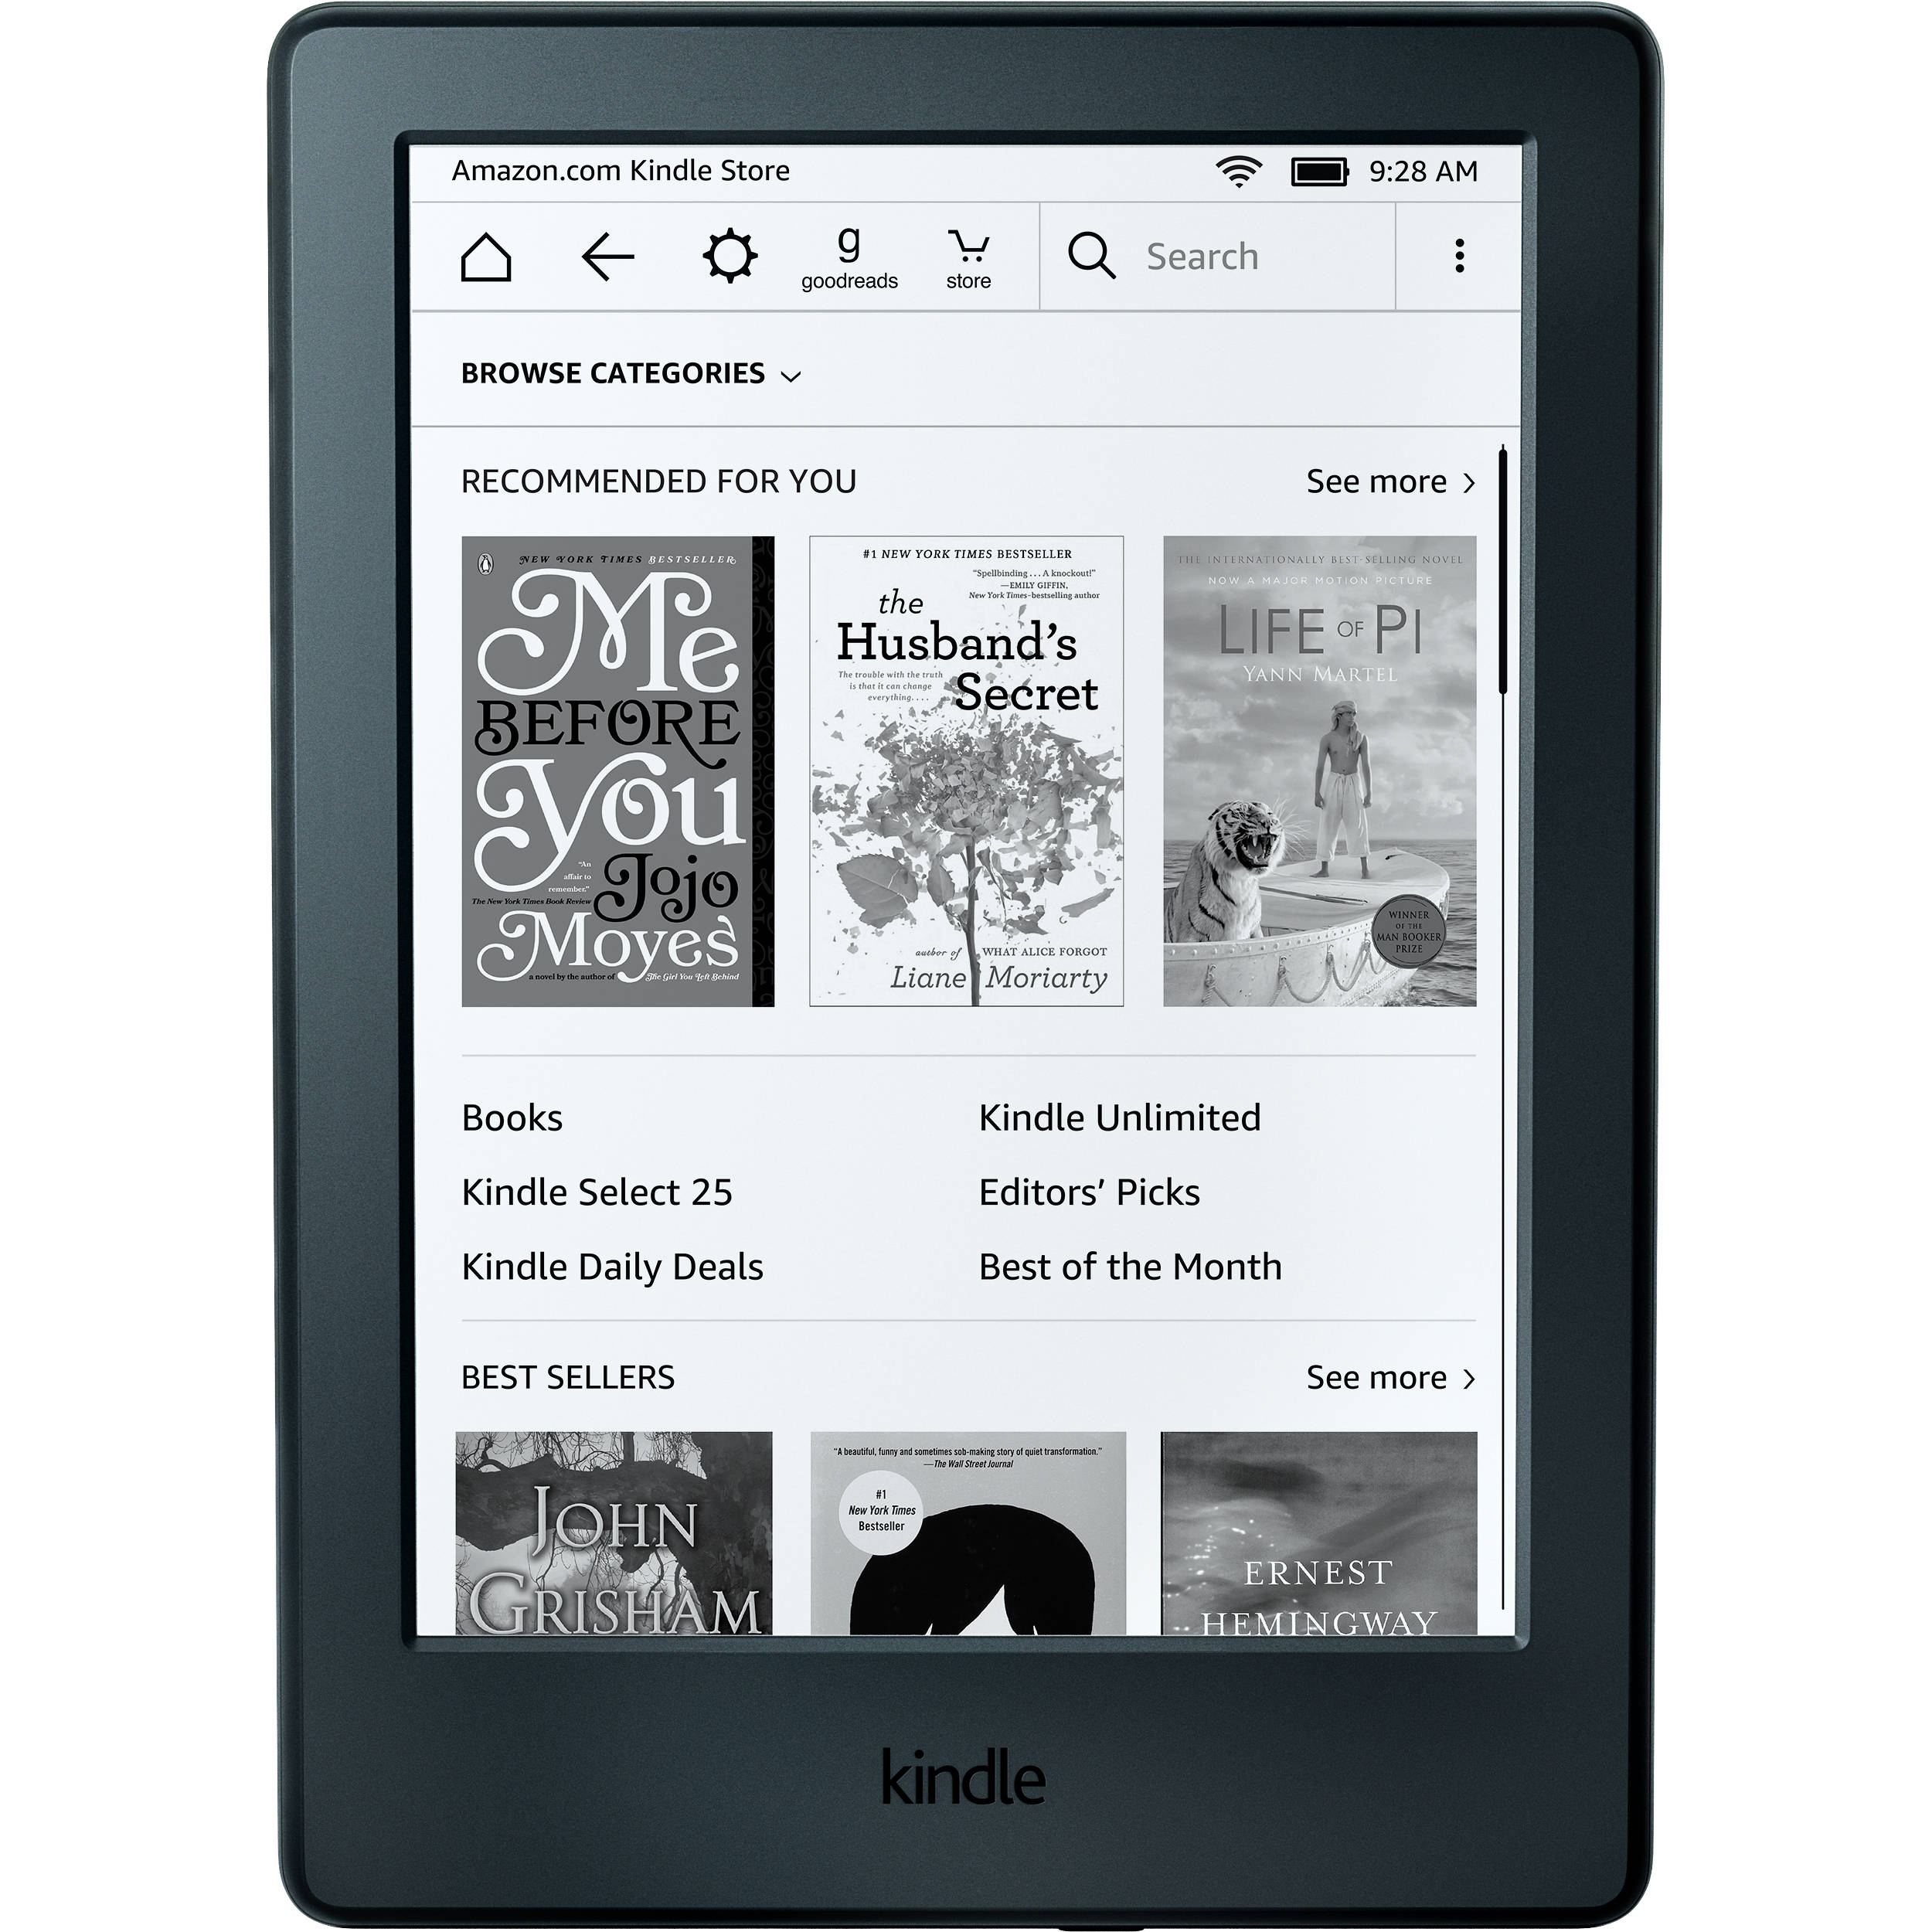 Kindle 6 ereader b00zv9pxp2 bh photo video kindle 6 ereader special offers advertisements black ccuart Image collections